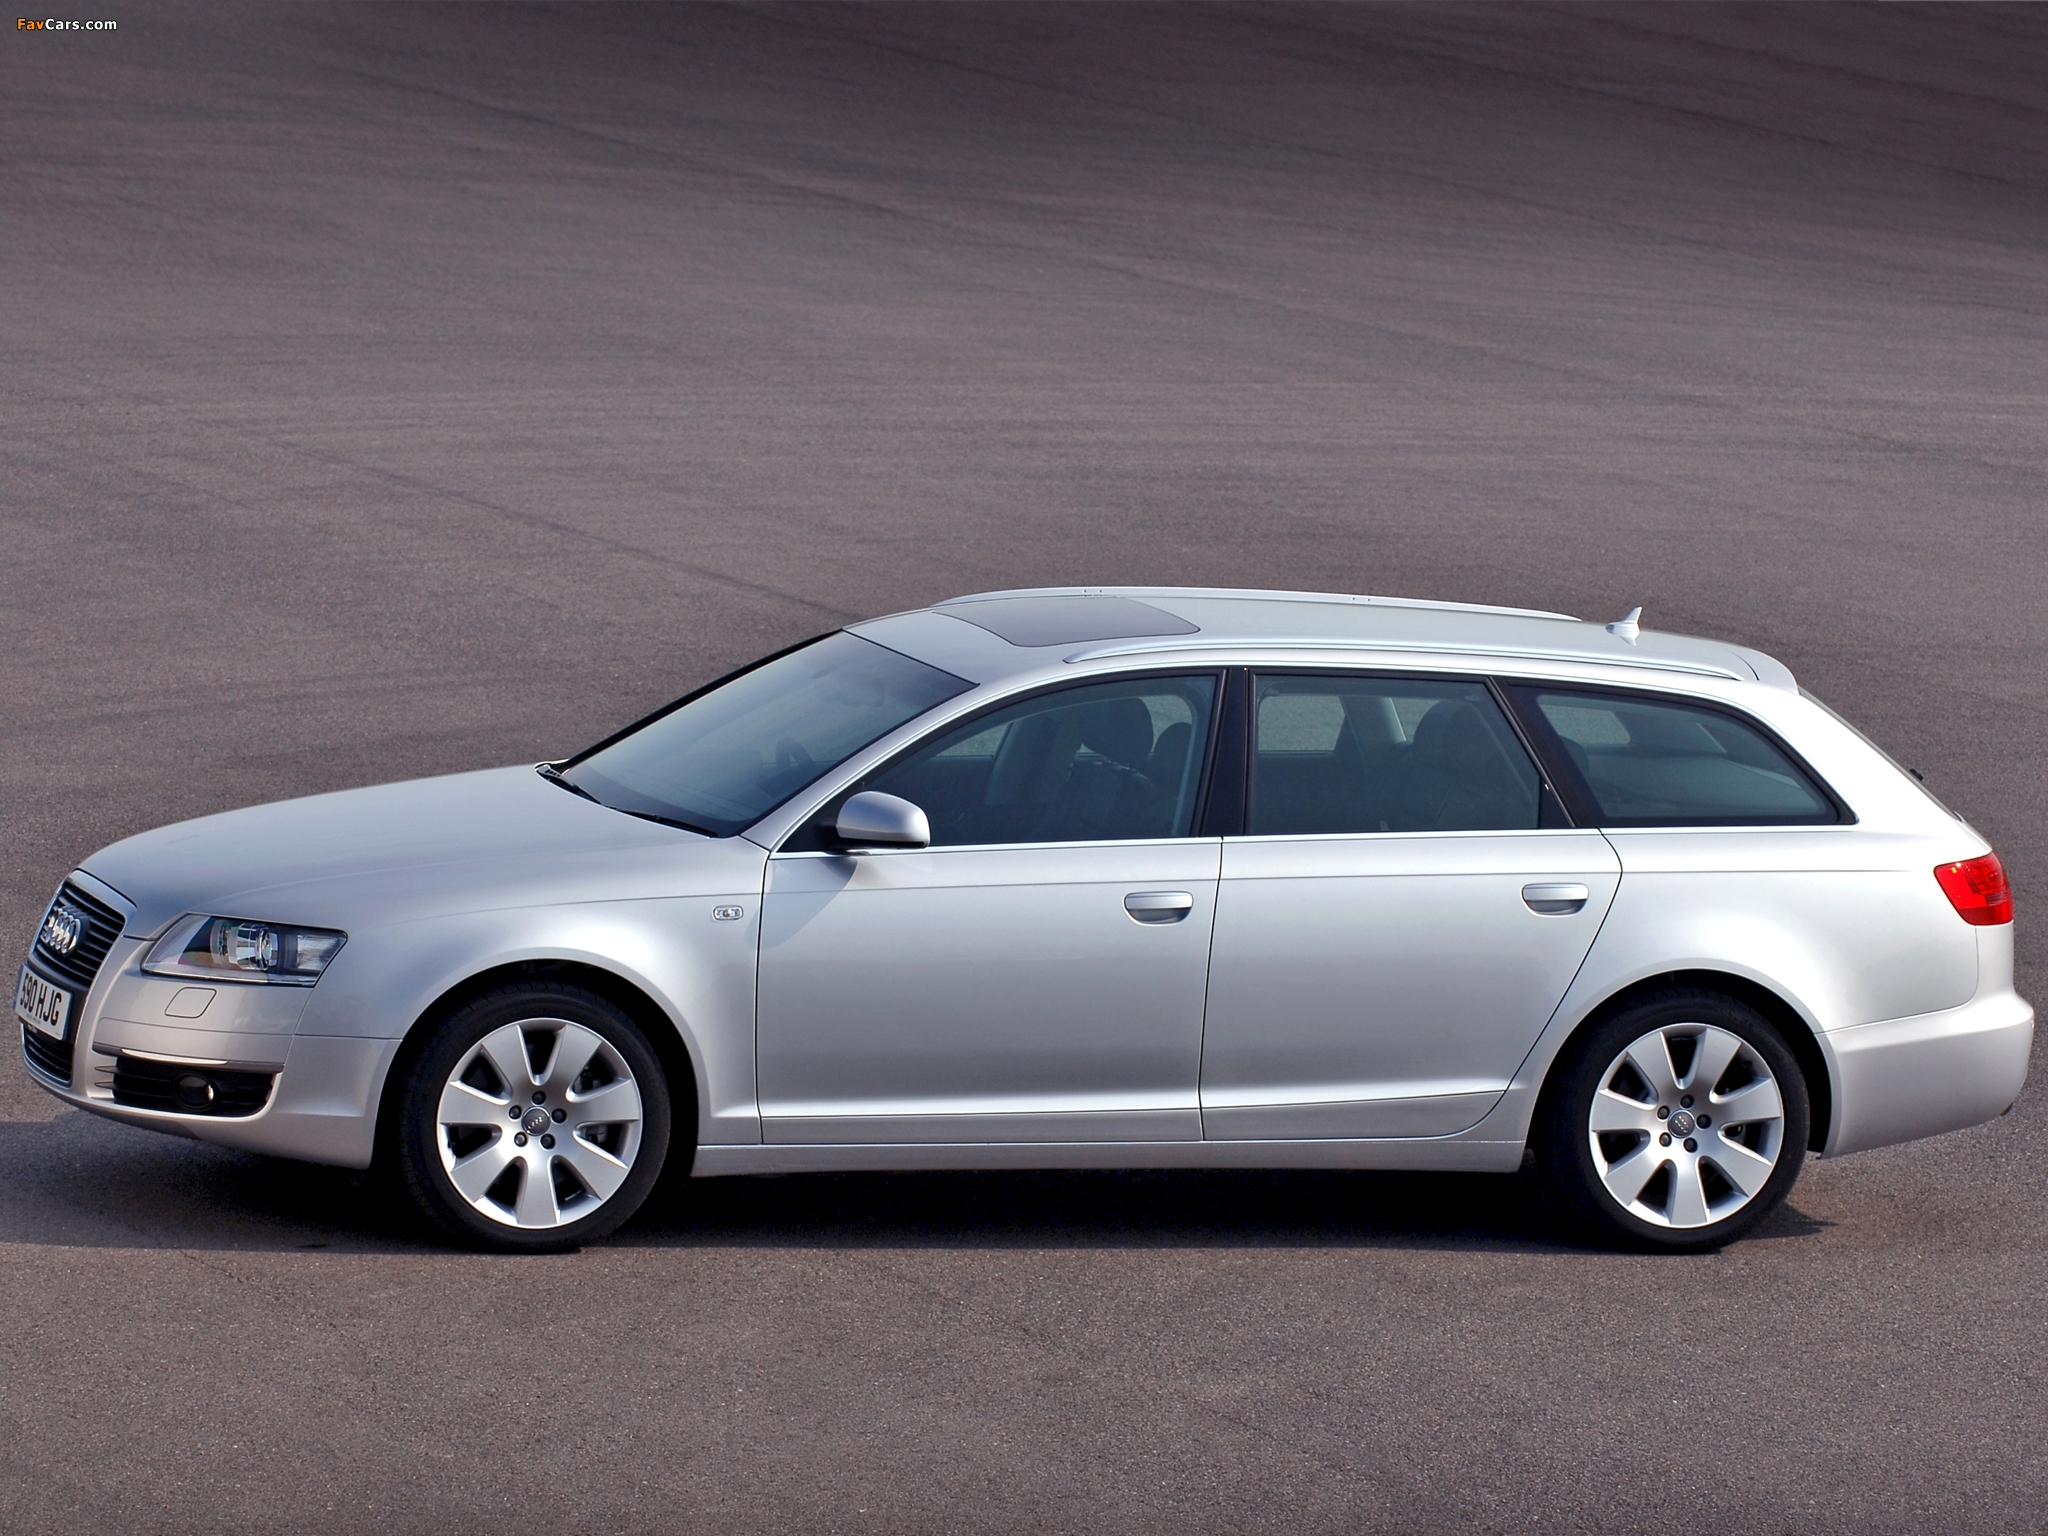 Images Of Audi A6 4 2 Quattro Avant Uk Spec 4f C6 2005